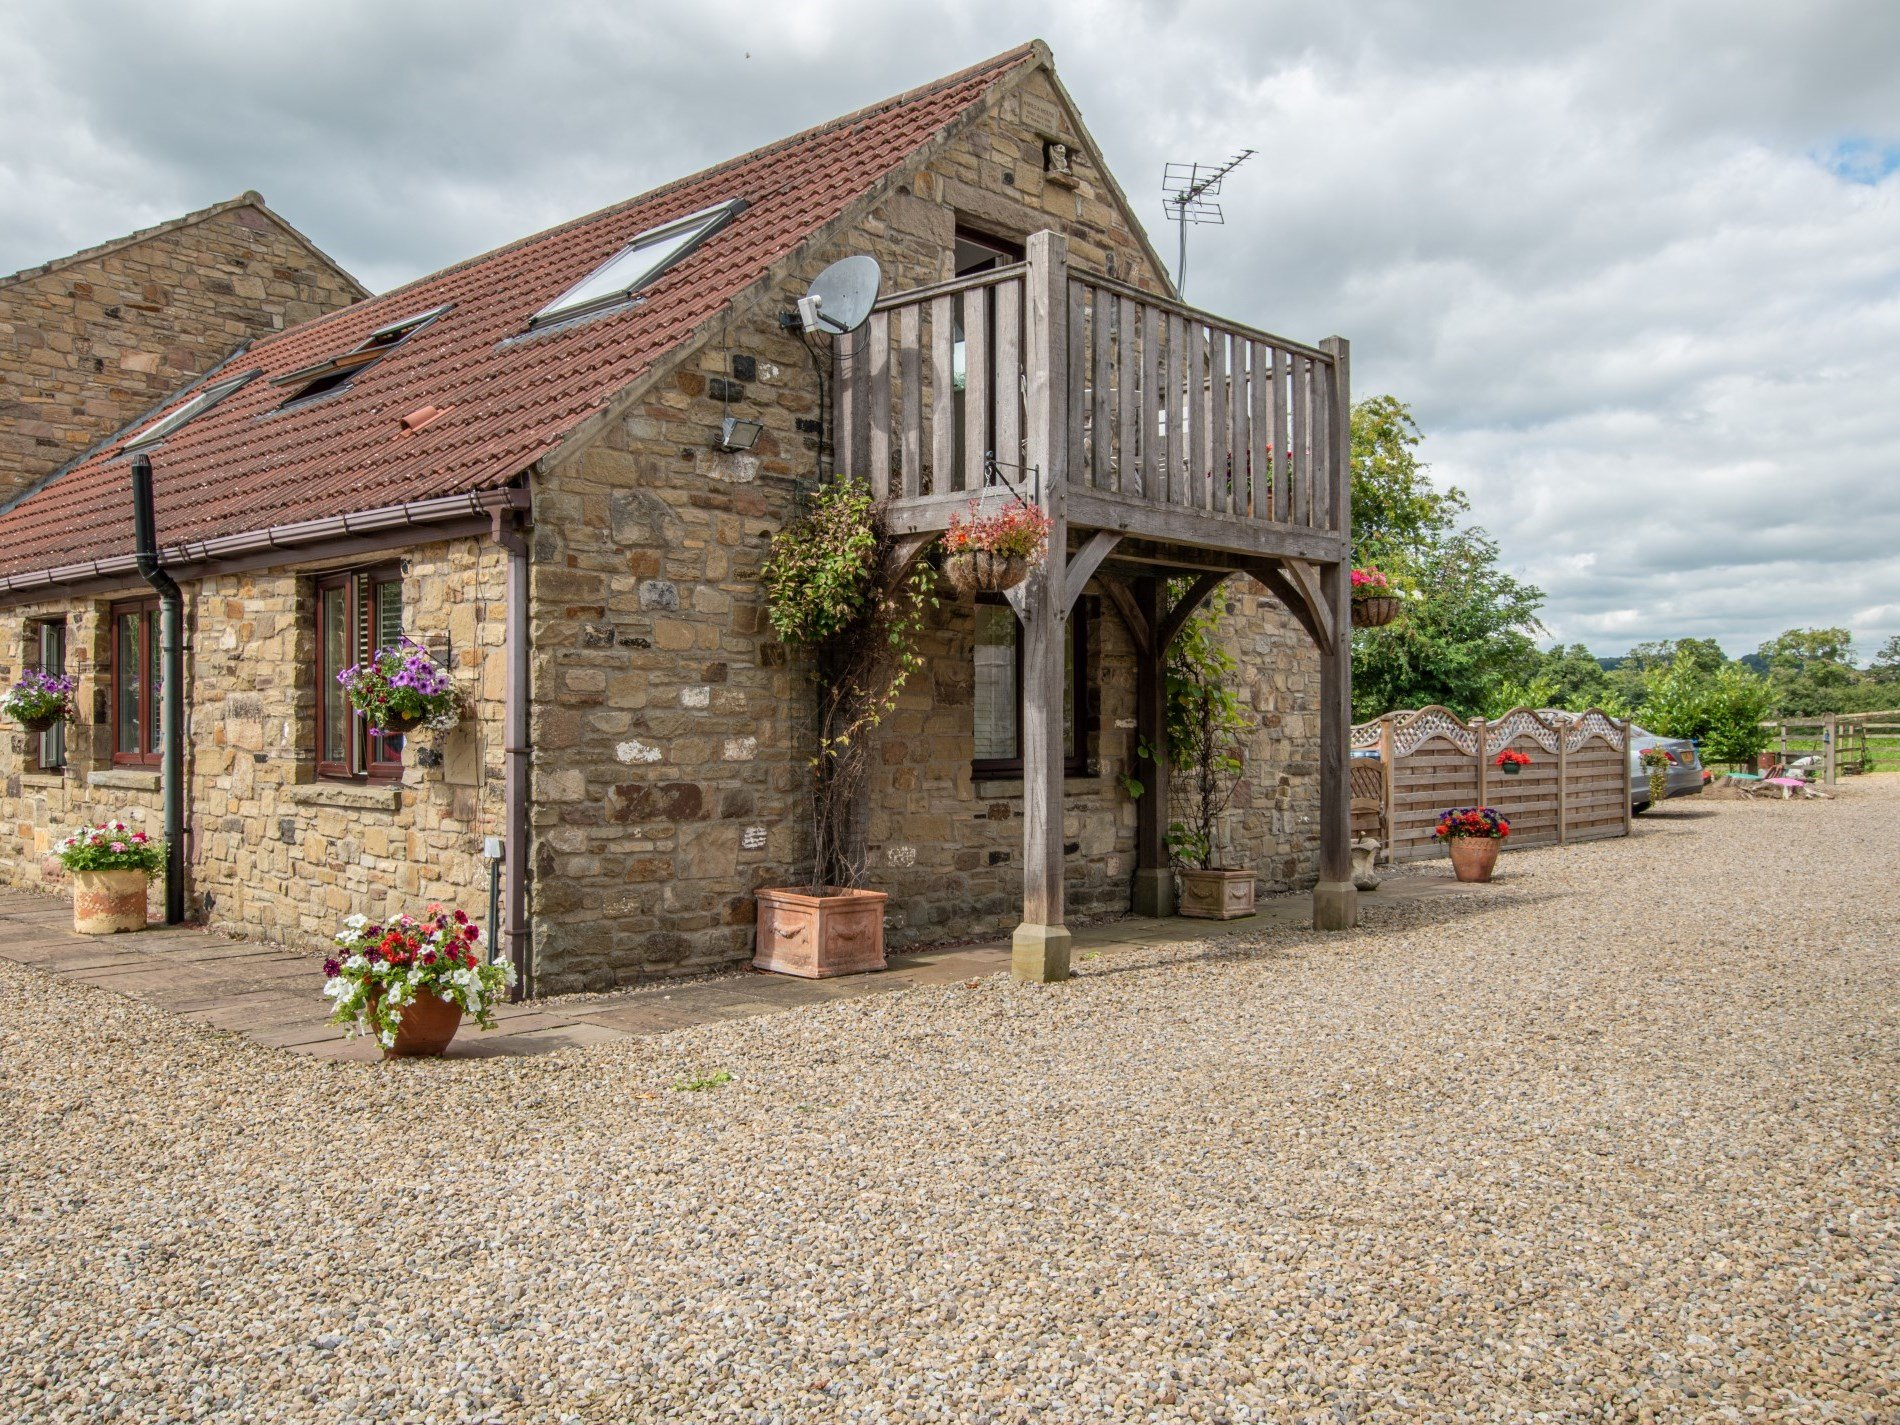 3 Bedroom Cottage in Richmond, Yorkshire Dales